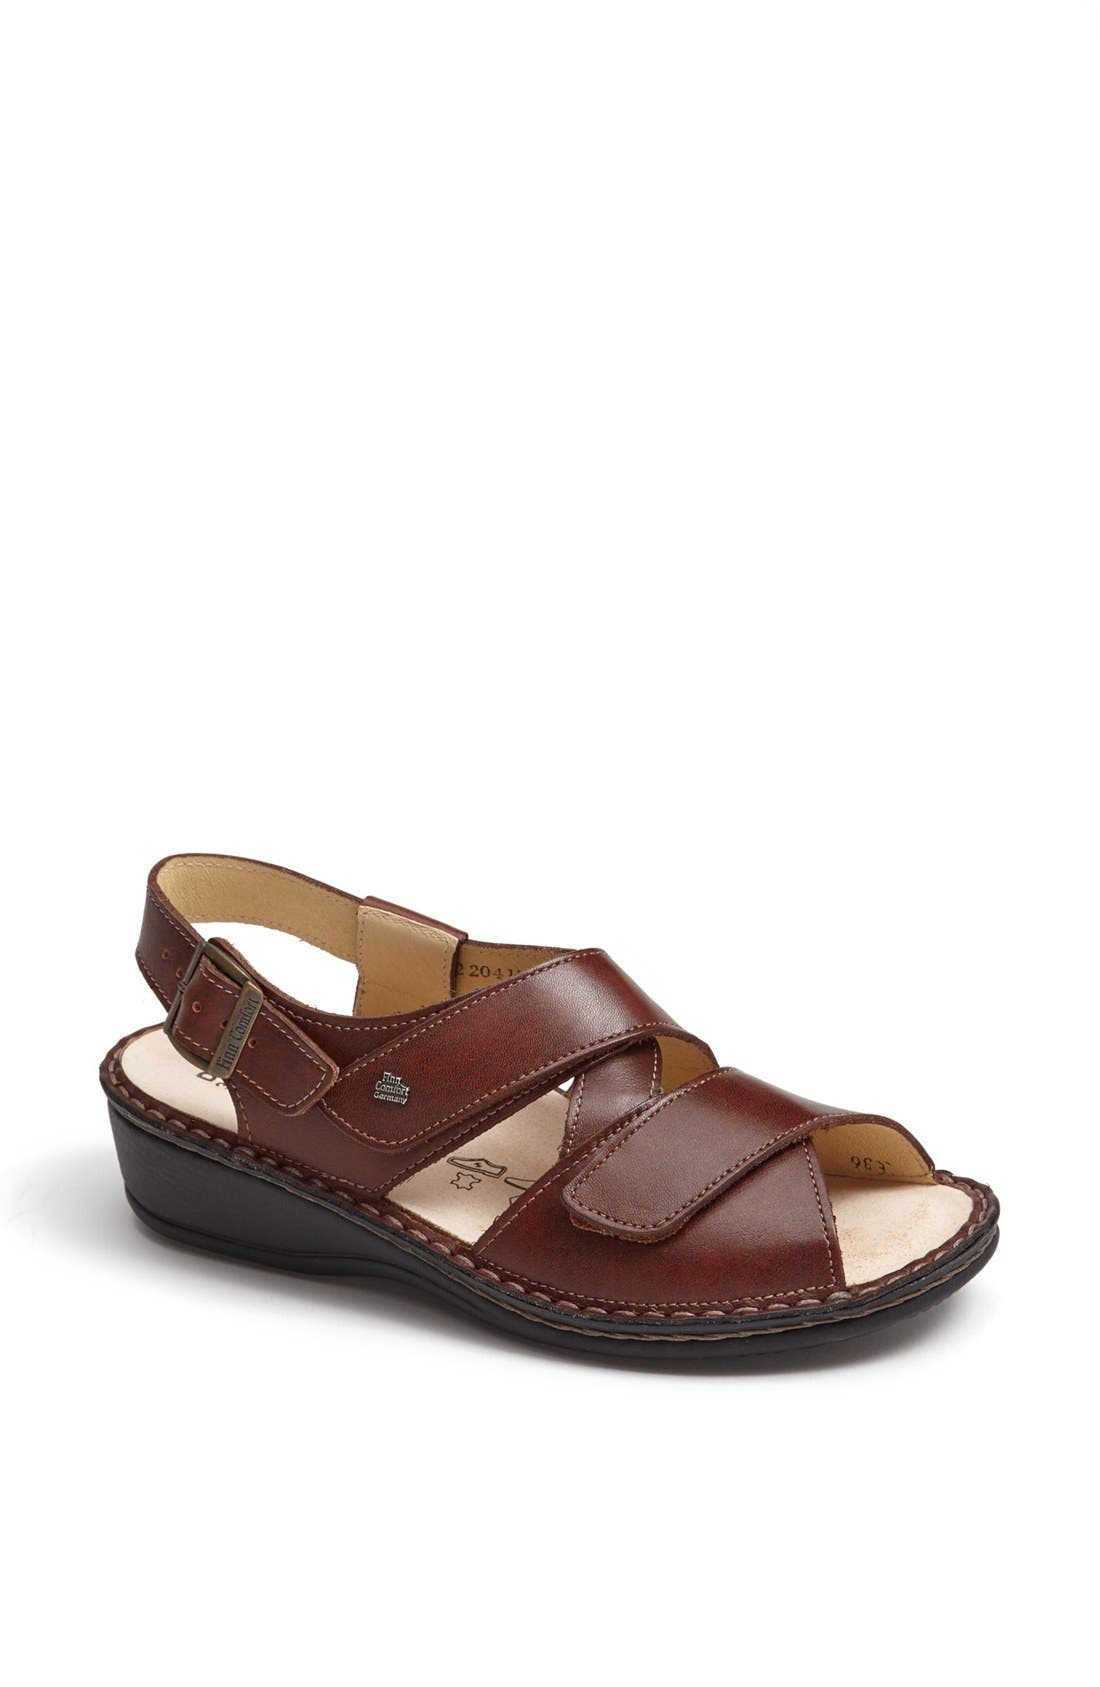 'Jersey' Sandal,                         Main,                         color, Brandy Country